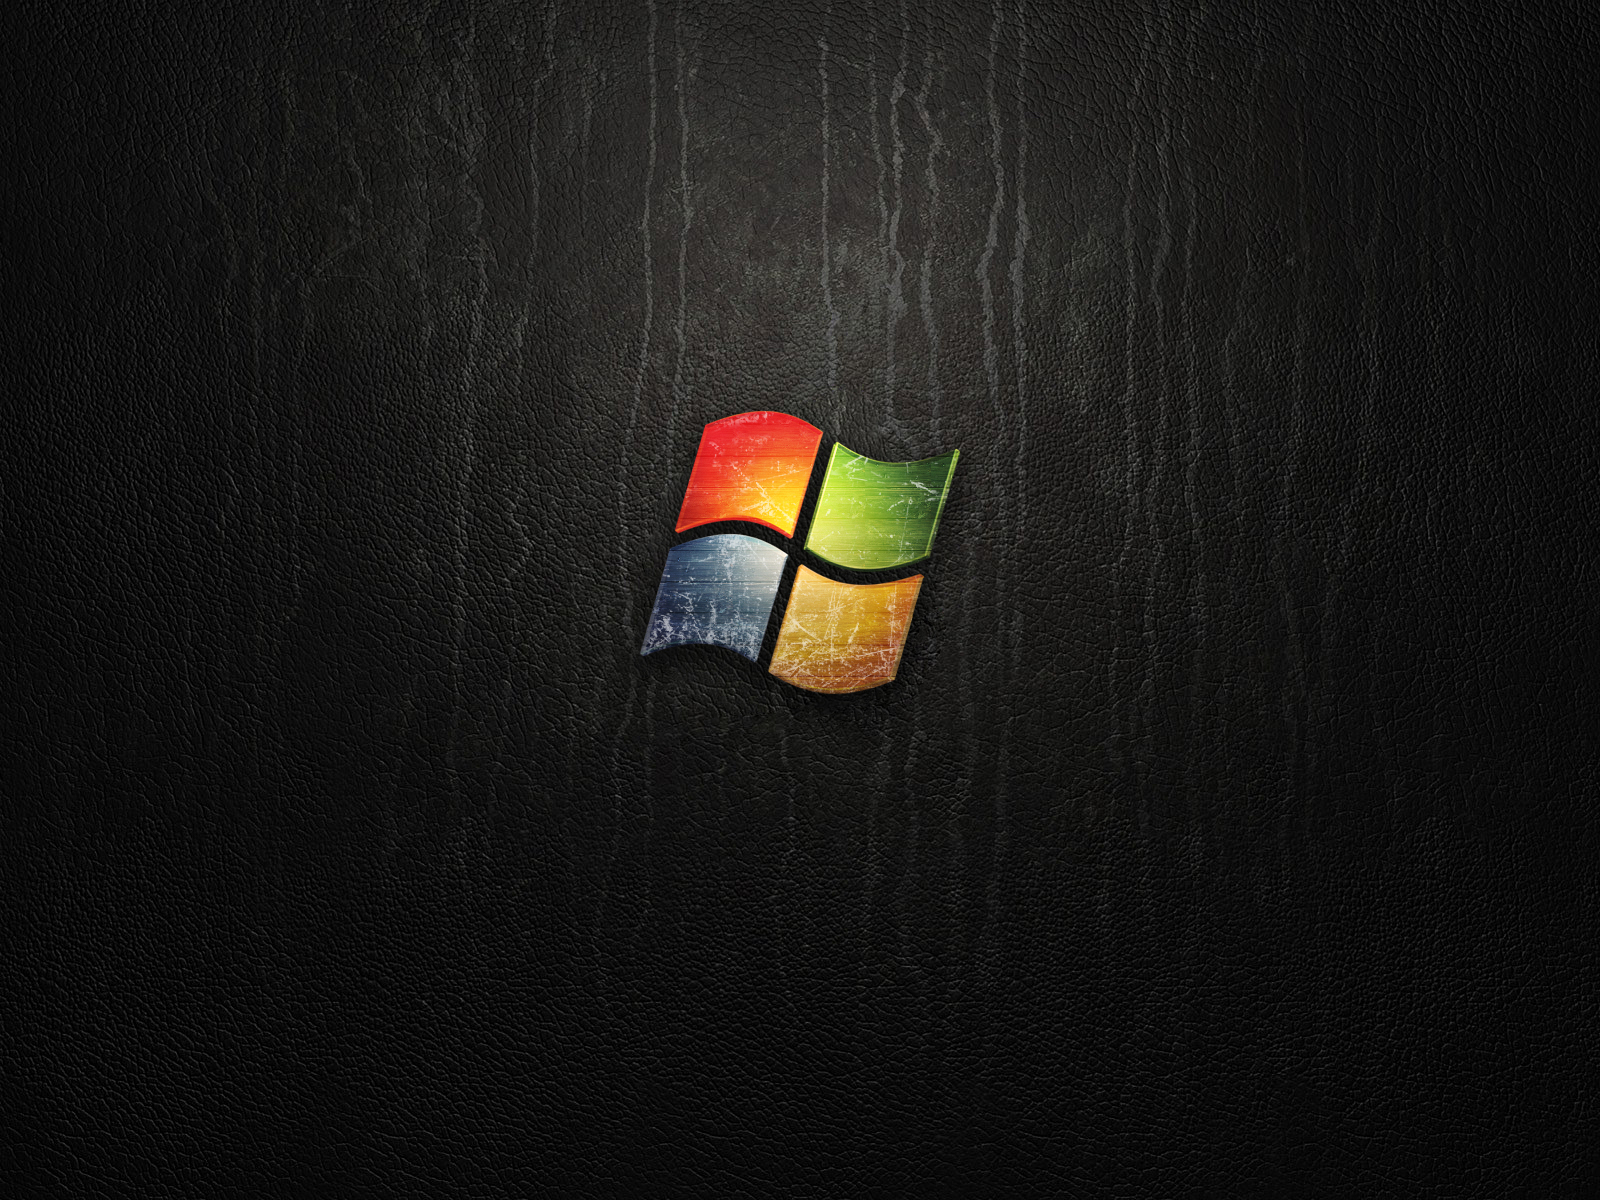 1600x1200 Weathered Windows Wallpaper desktop PC and Mac wallpaper 1600x1200